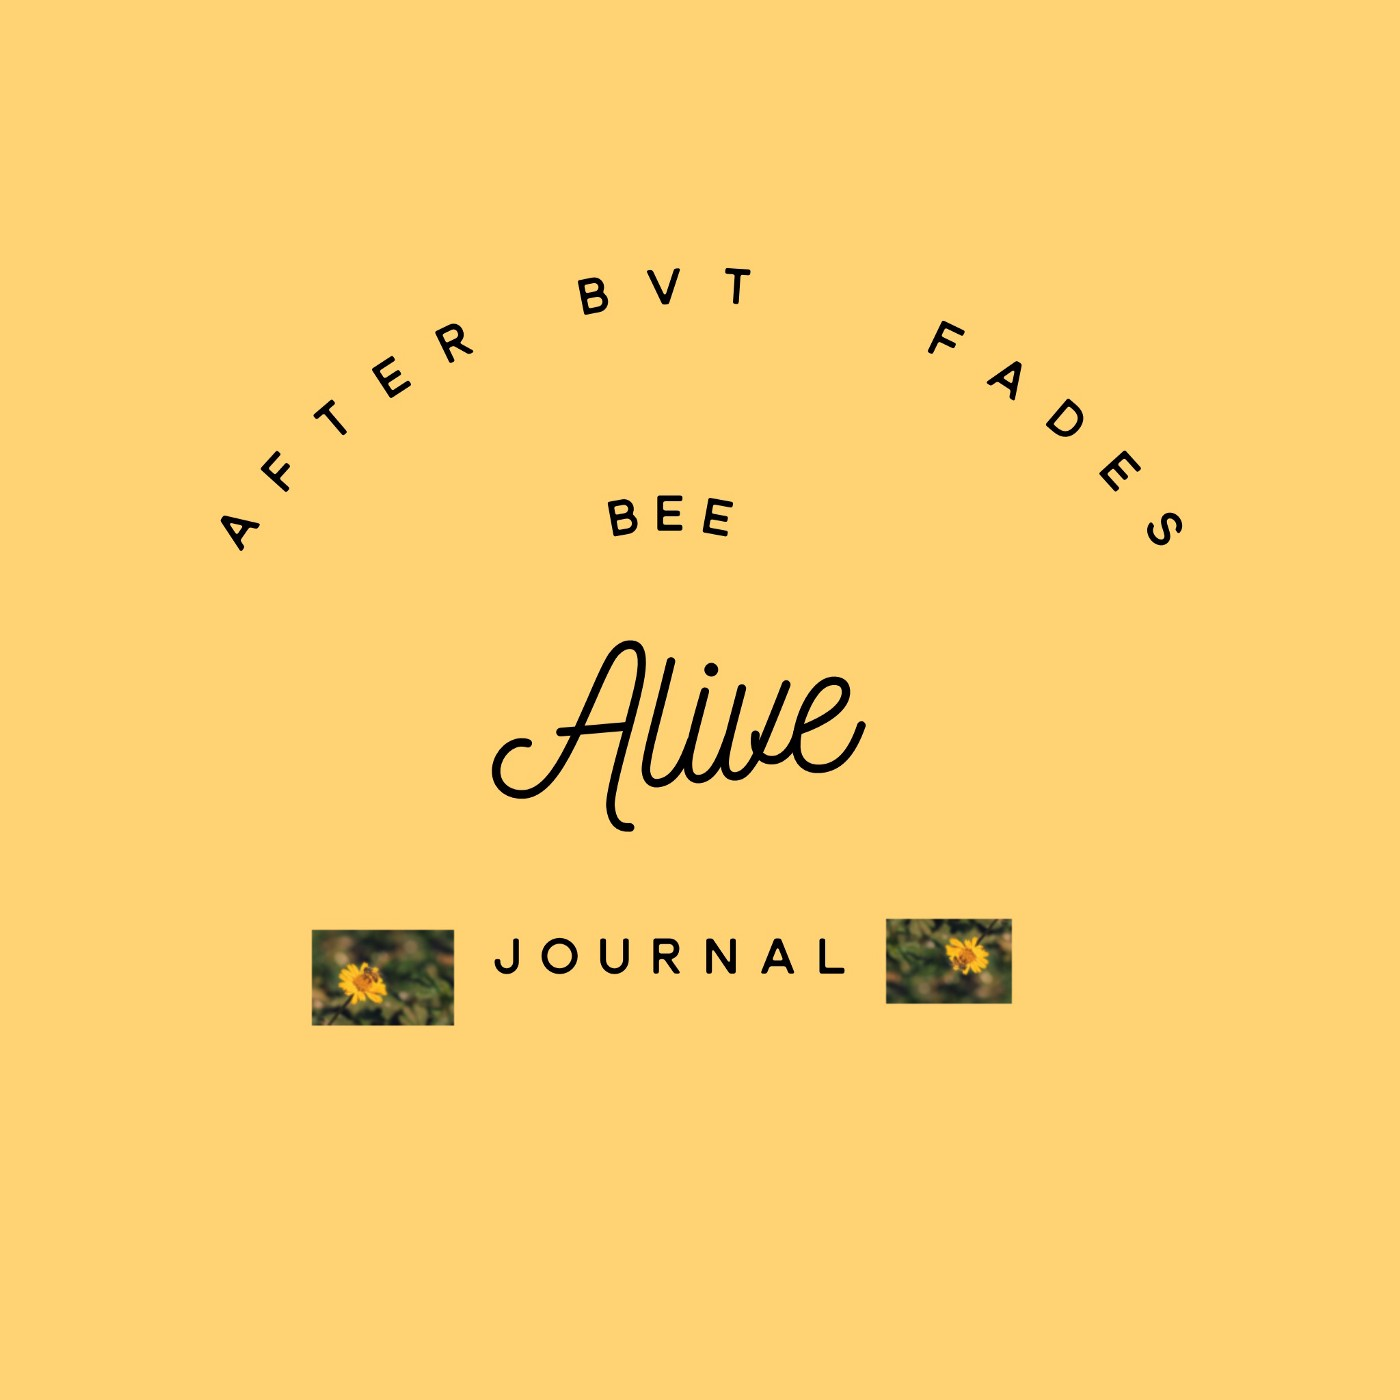 Graphic photo that says, After BVT (Bee Venom Therapy) Fades, Bee Alive Journal, on a yellow background with two honey bees on two flowers flanking the word journal.